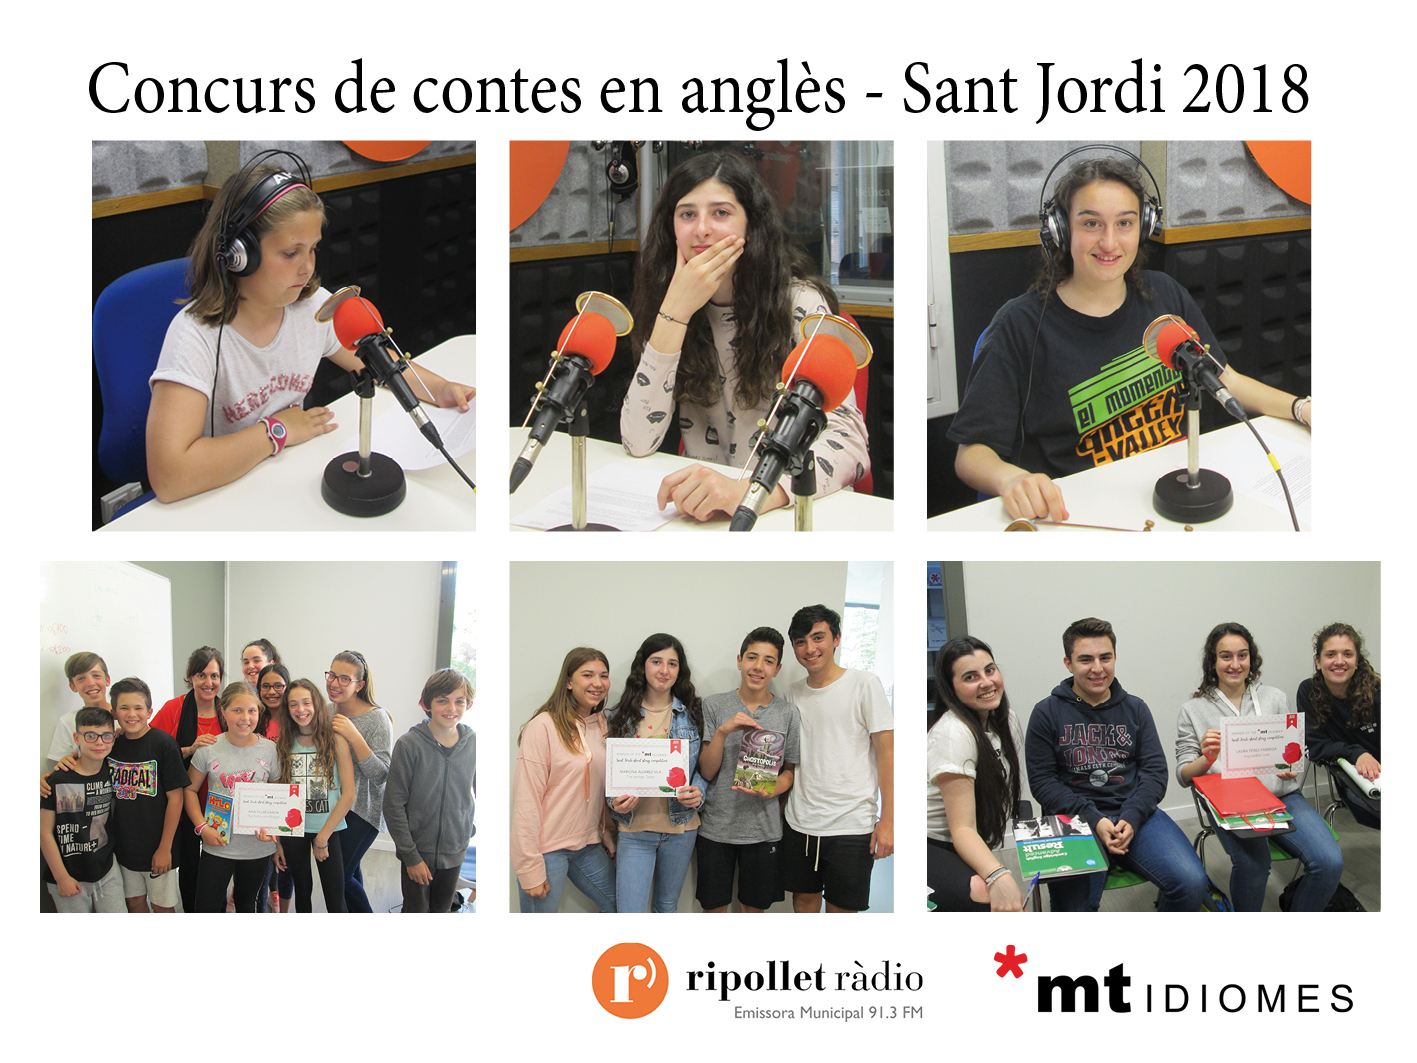 curcurs-contes-angles-2018